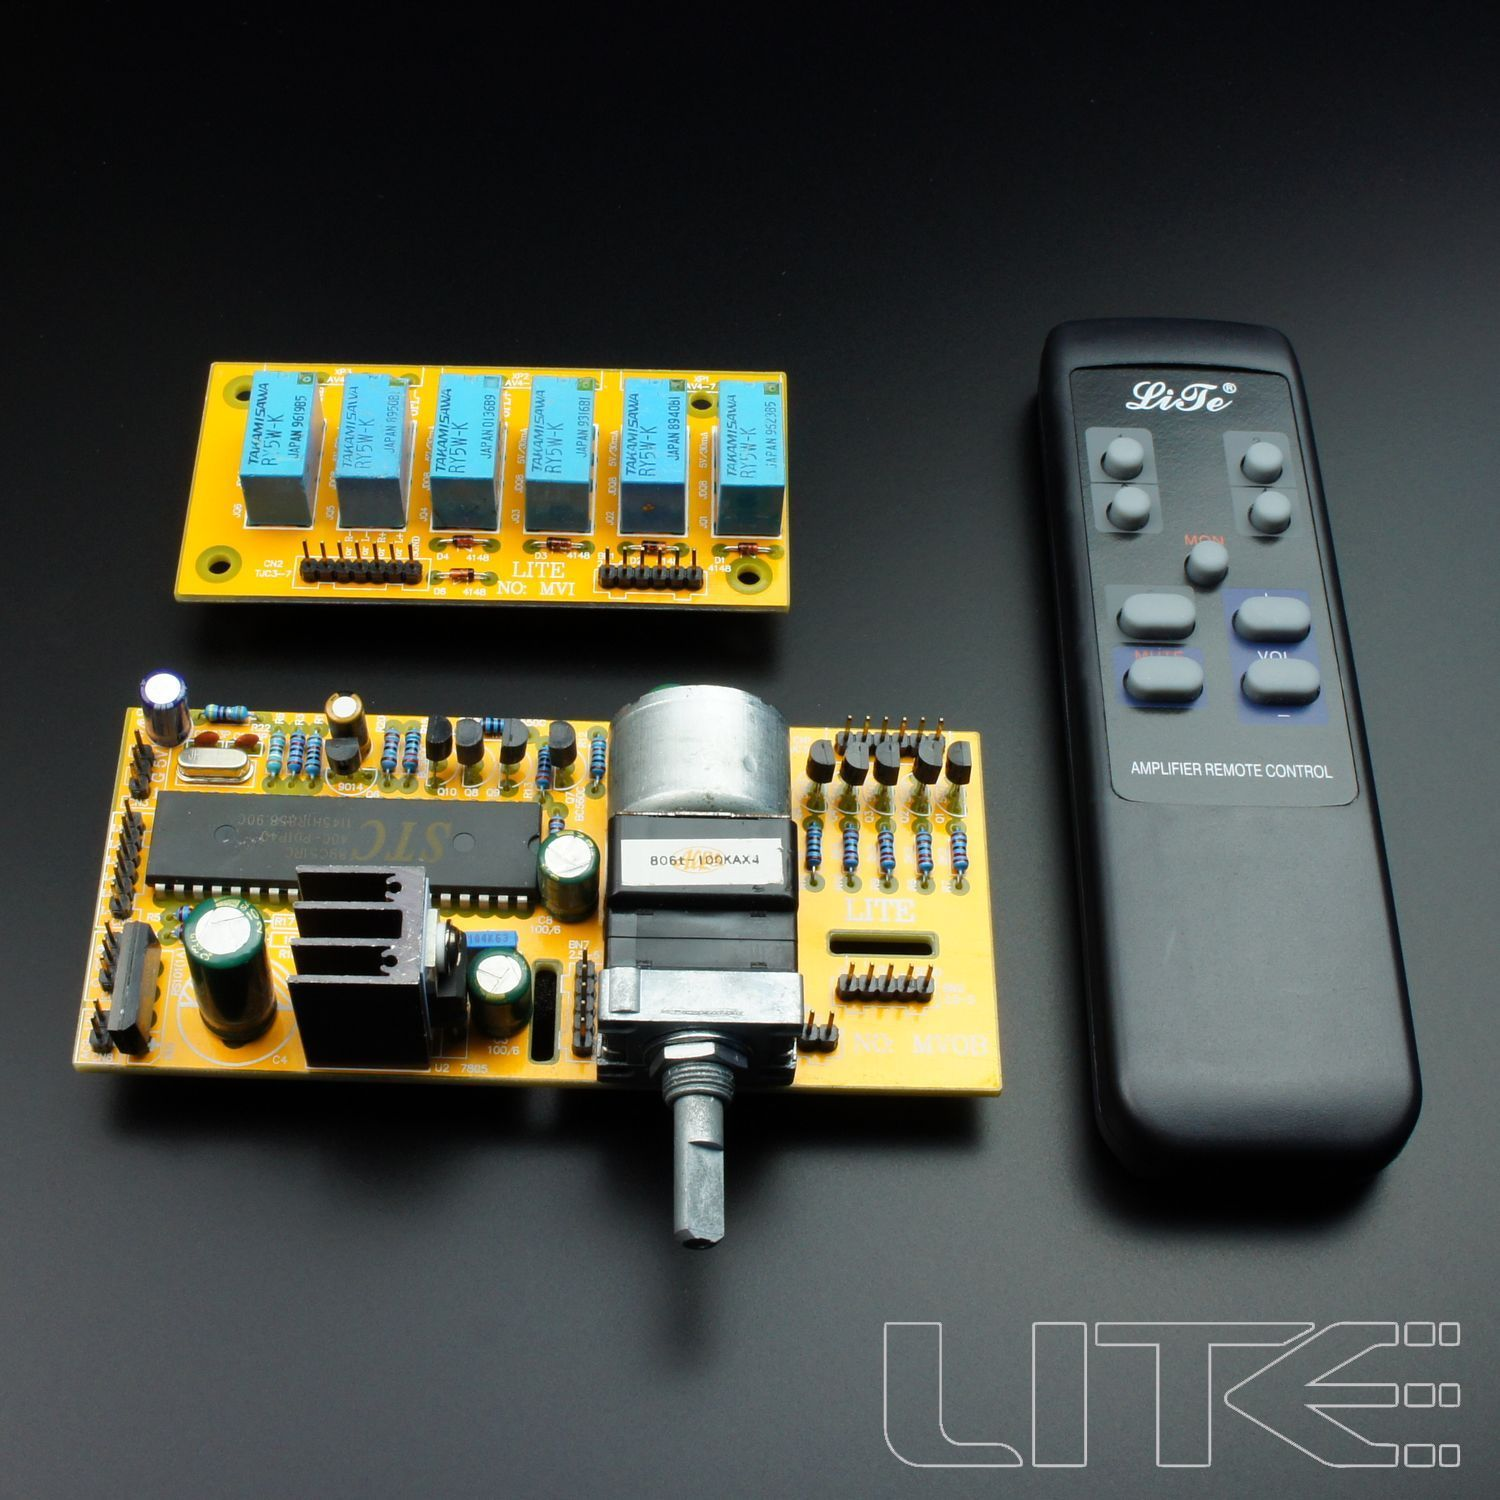 Mv06 6 Way Input Motorized Remote Volume Control Kit Alps Suitable For Men And Women Of All Ages In All Seasons Back To Search Resultsconsumer Electronics Accessories & Parts